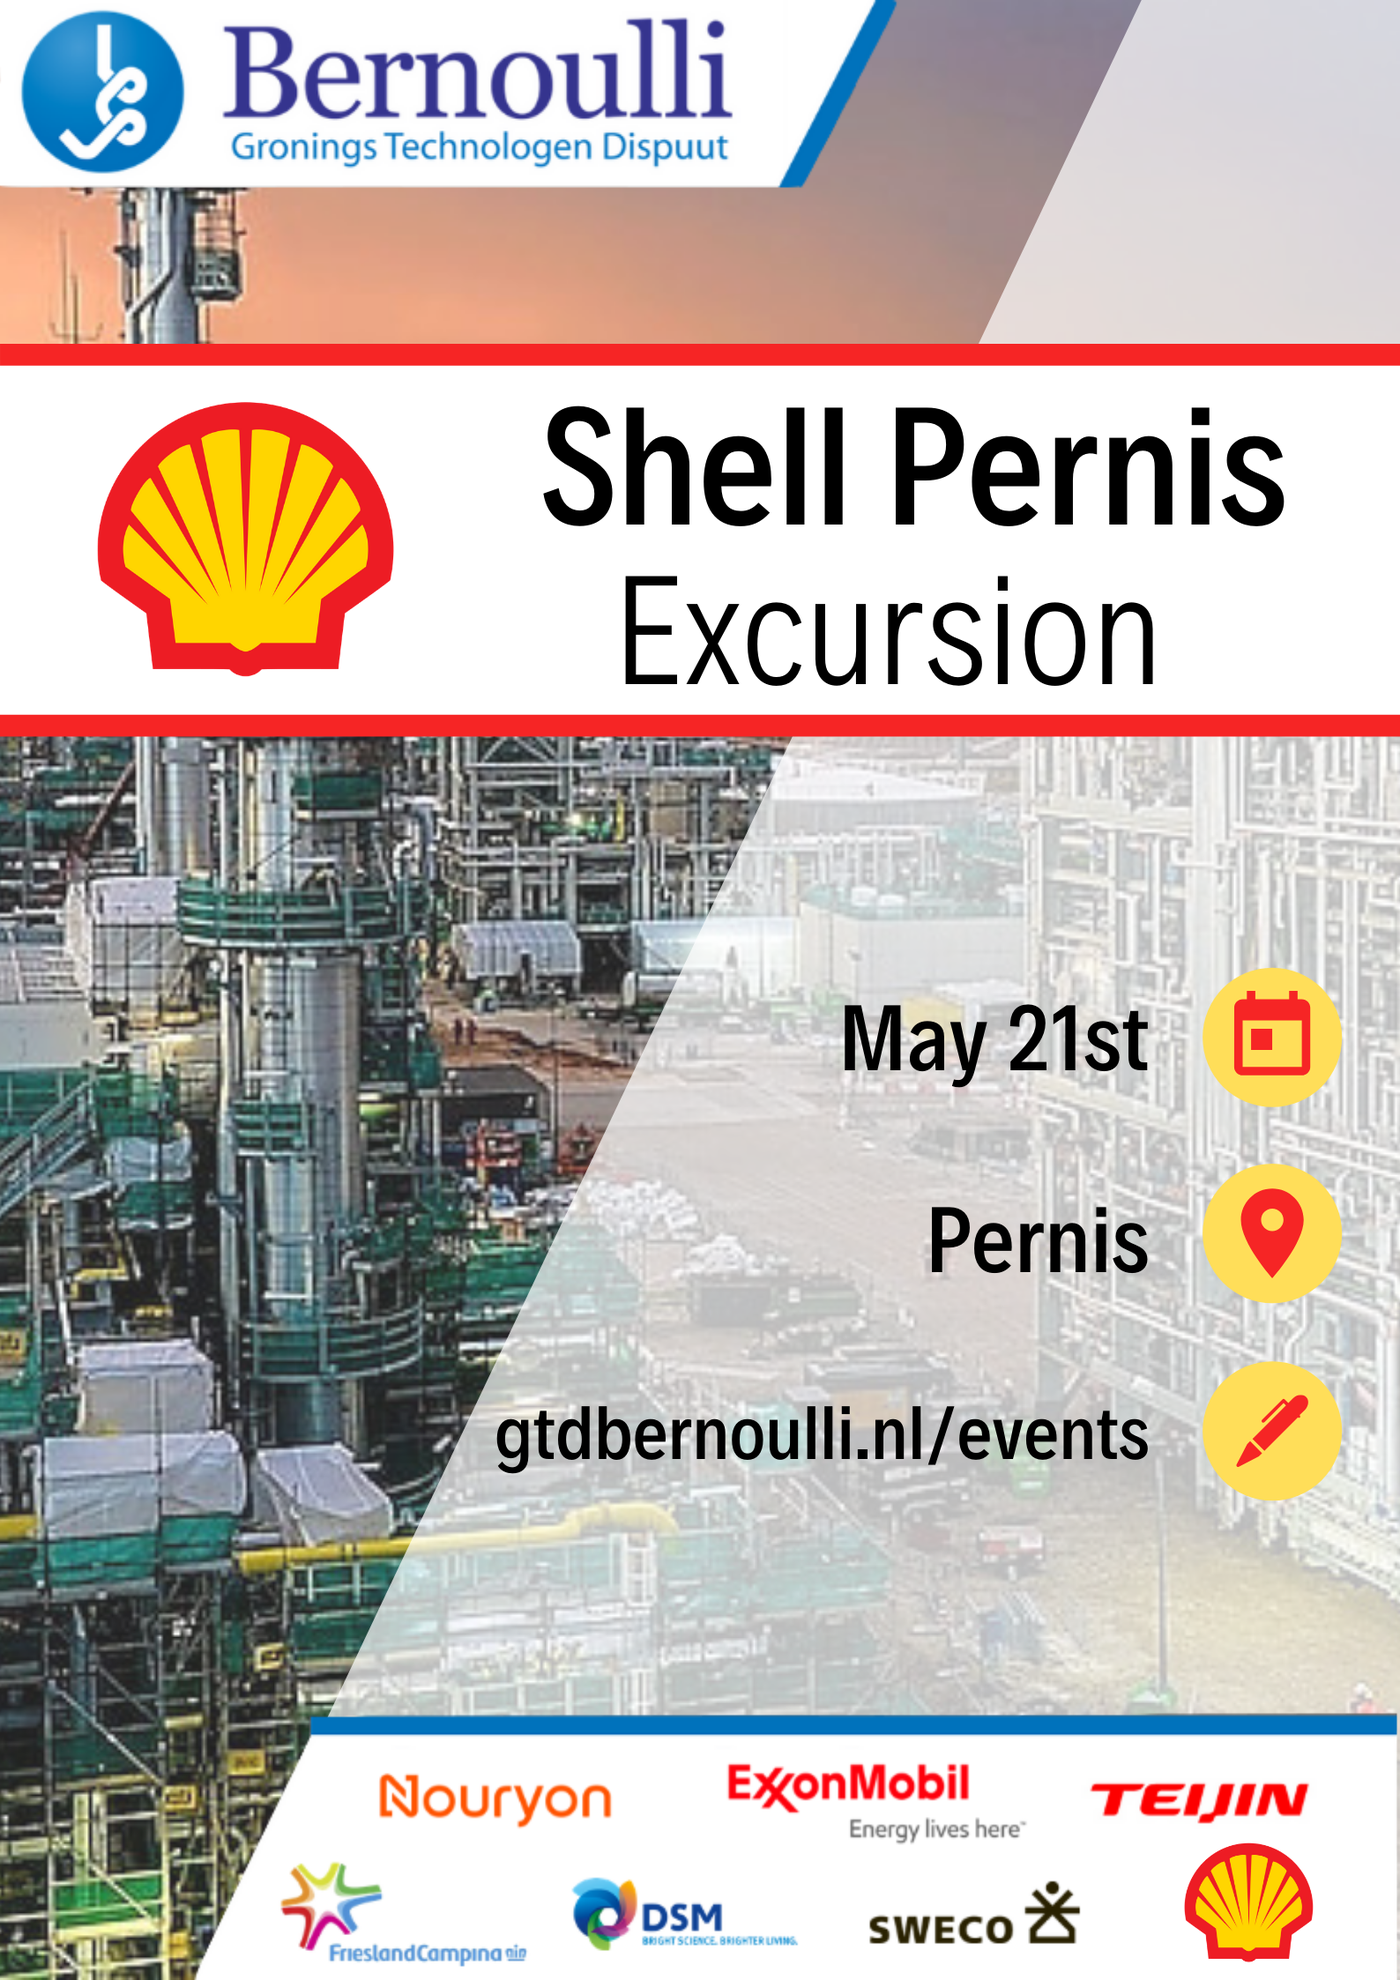 Shell Pernis Excursion